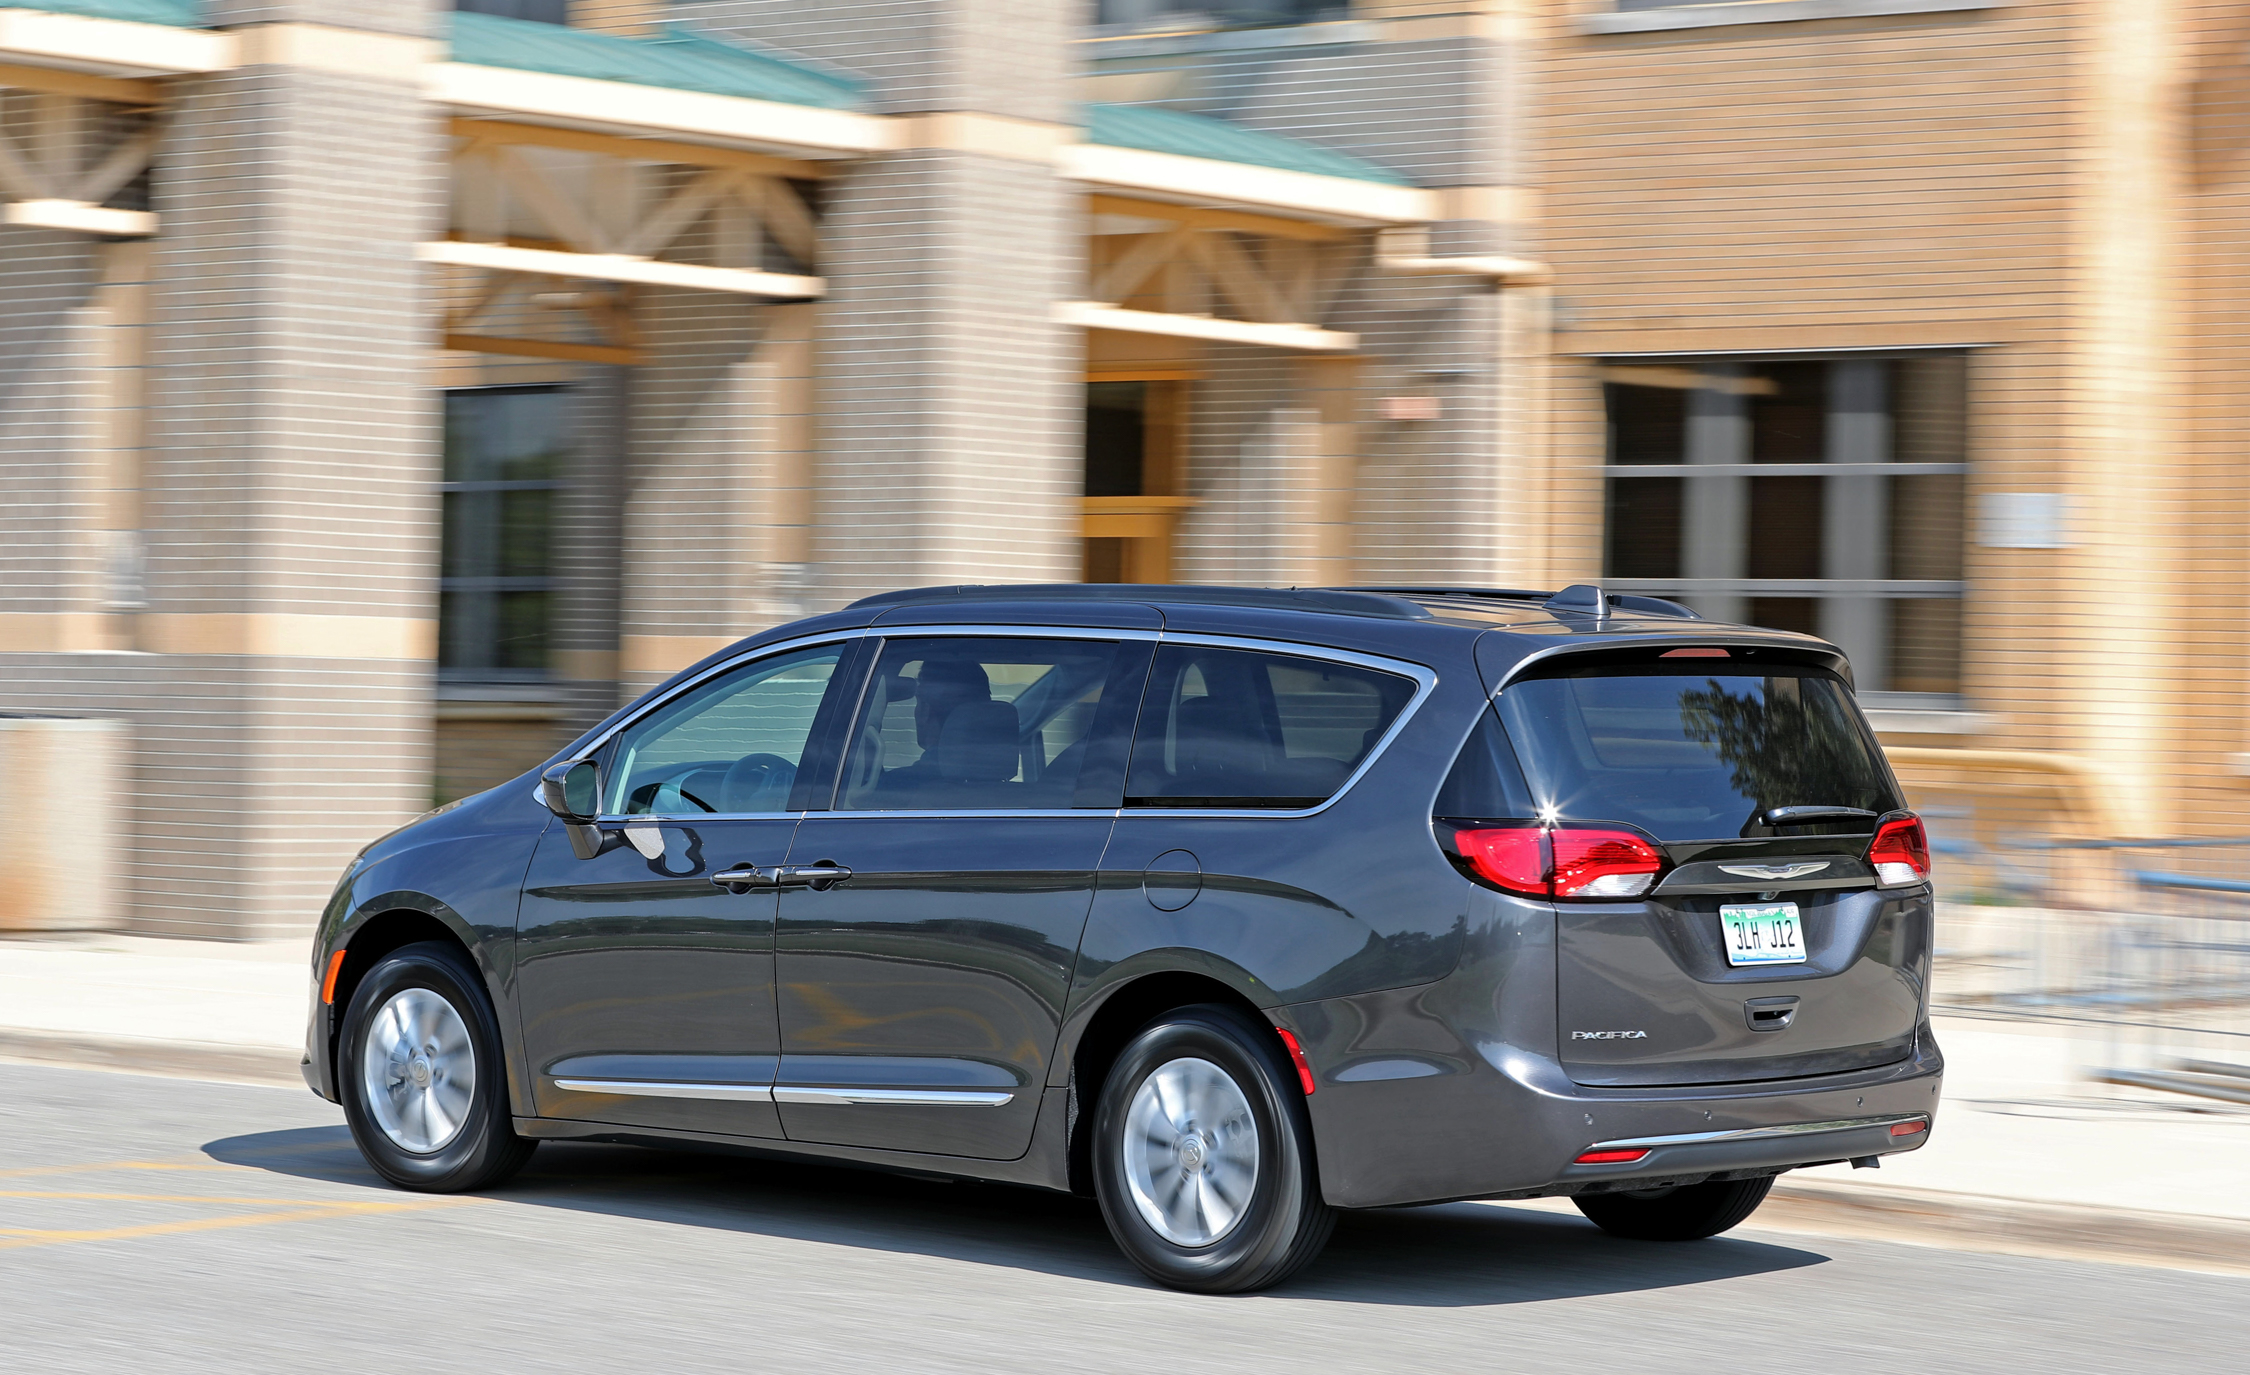 2017 Chrysler Pacifica Touring L Test Drive Rear Side View (View 2 of 25)